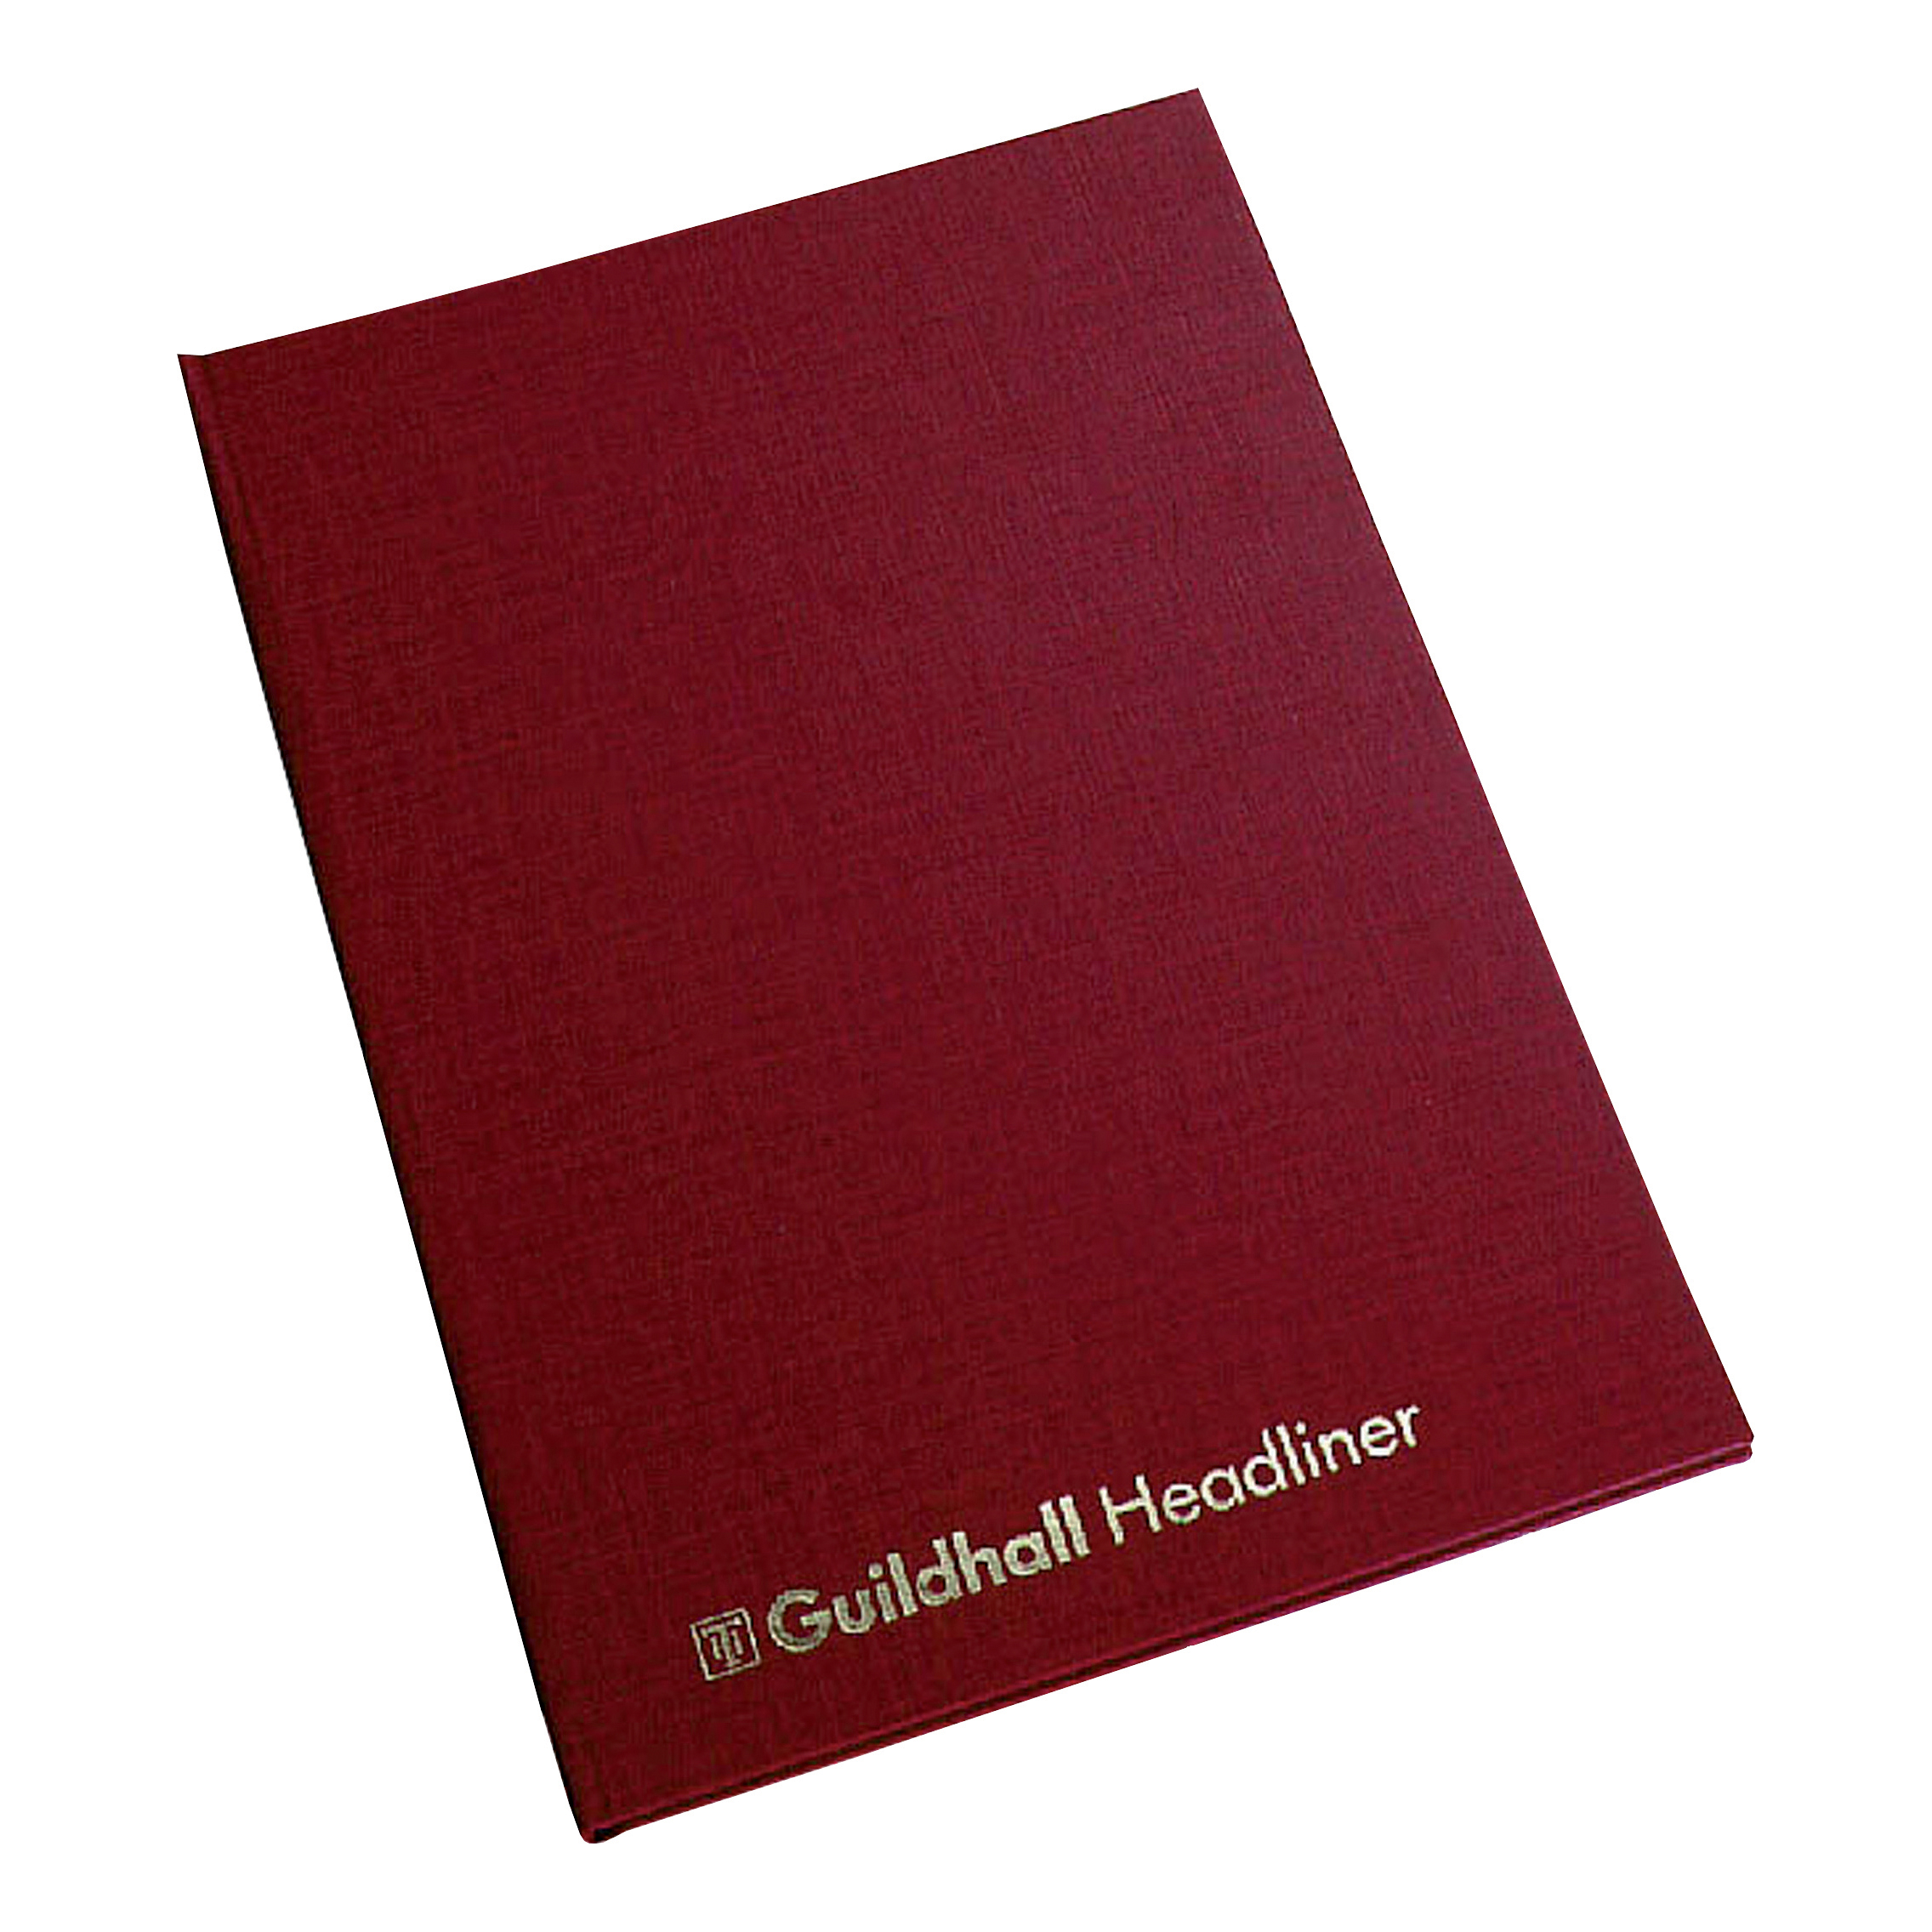 Guildhall Headliner Account Book 38 Series 10 Cash Column 80 Pages 298x203mm Ref 38/10Z